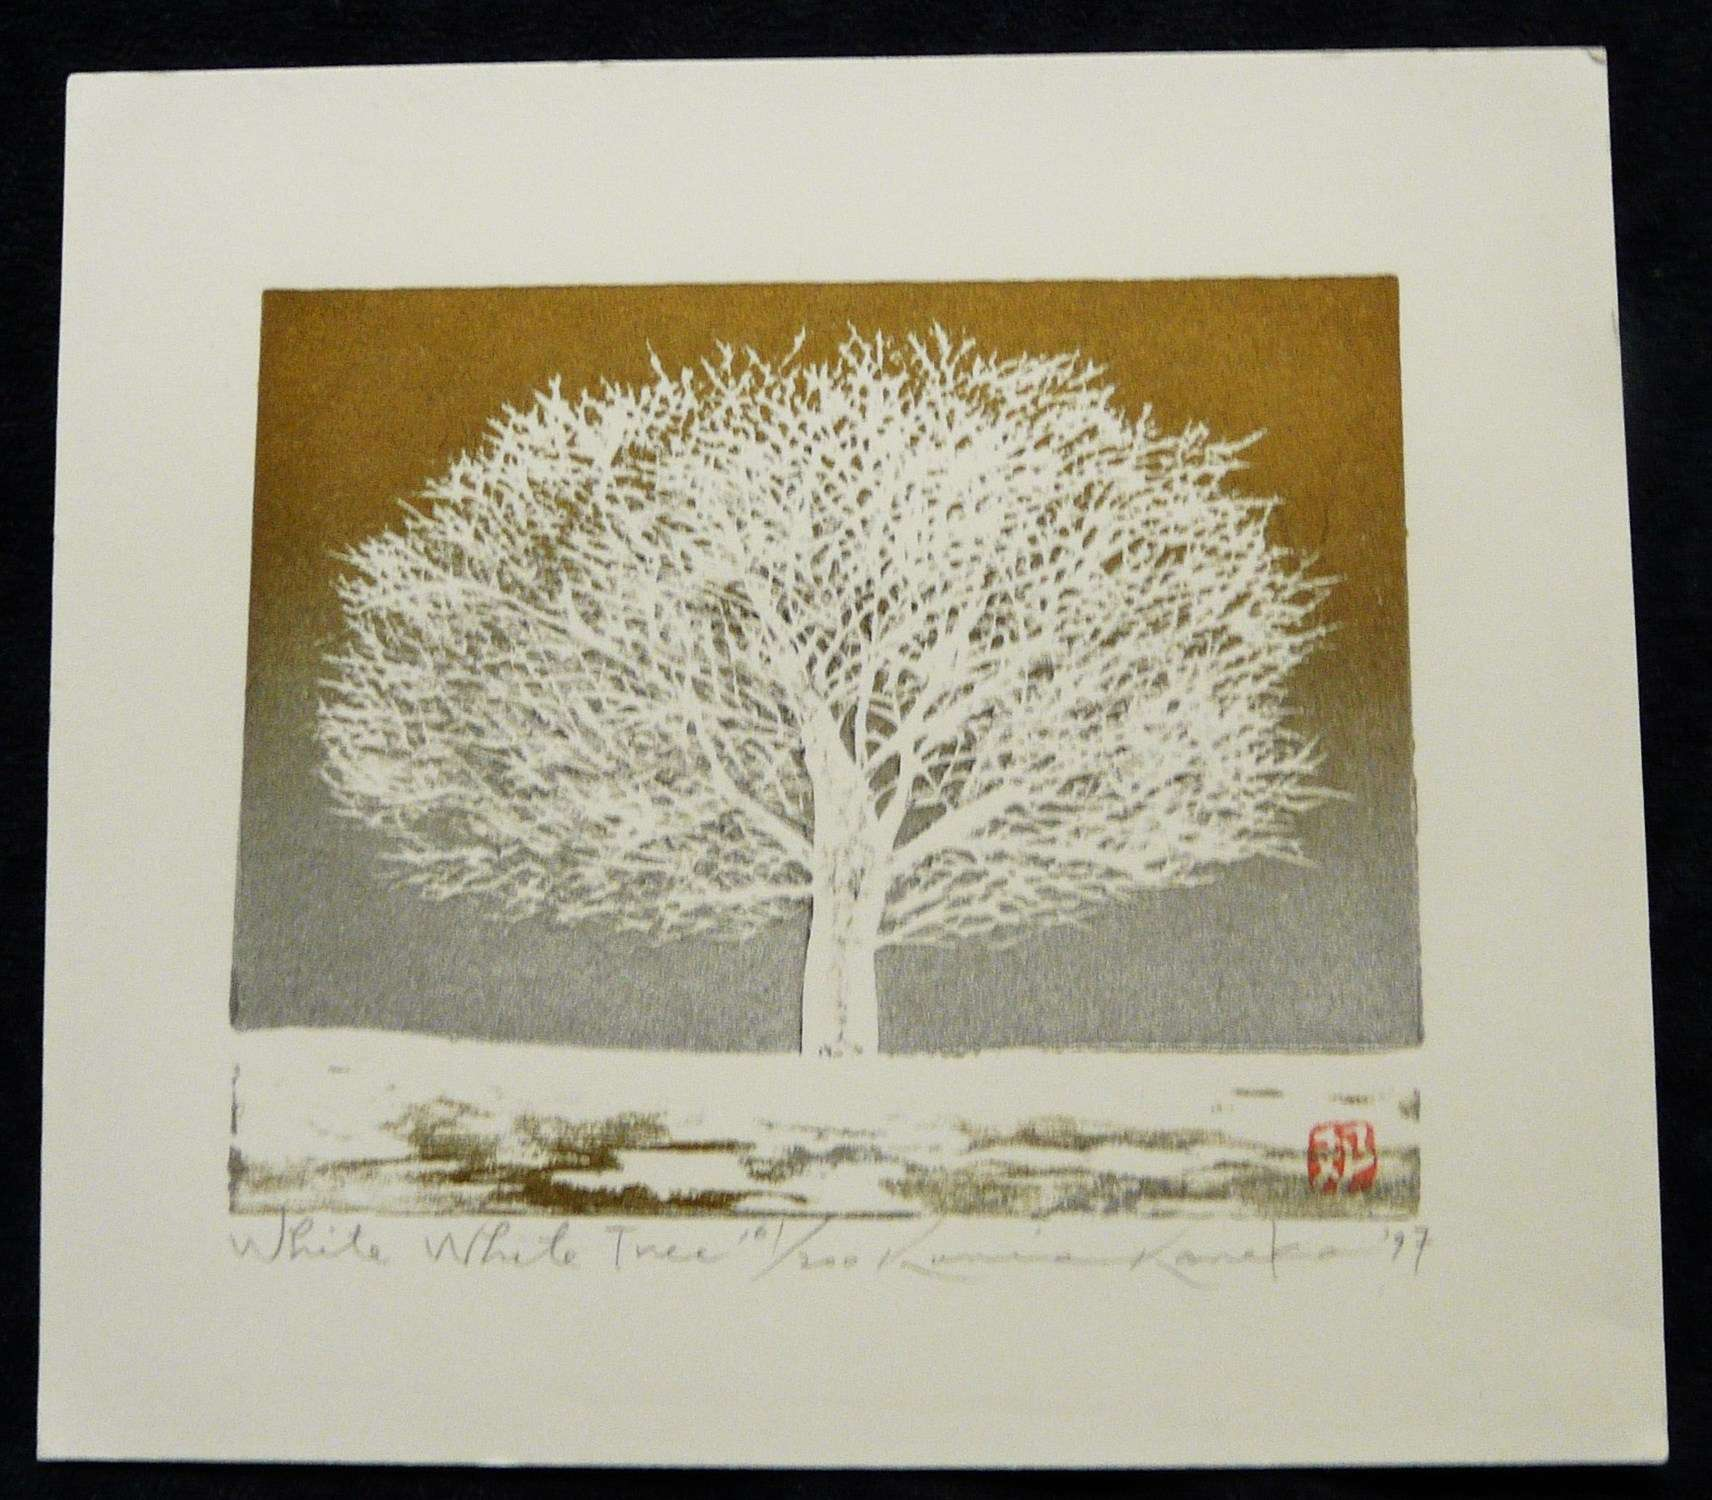 Kunio Kaneko: #P3800 WHITE, WHITE TREE - AN EARLY SCENE